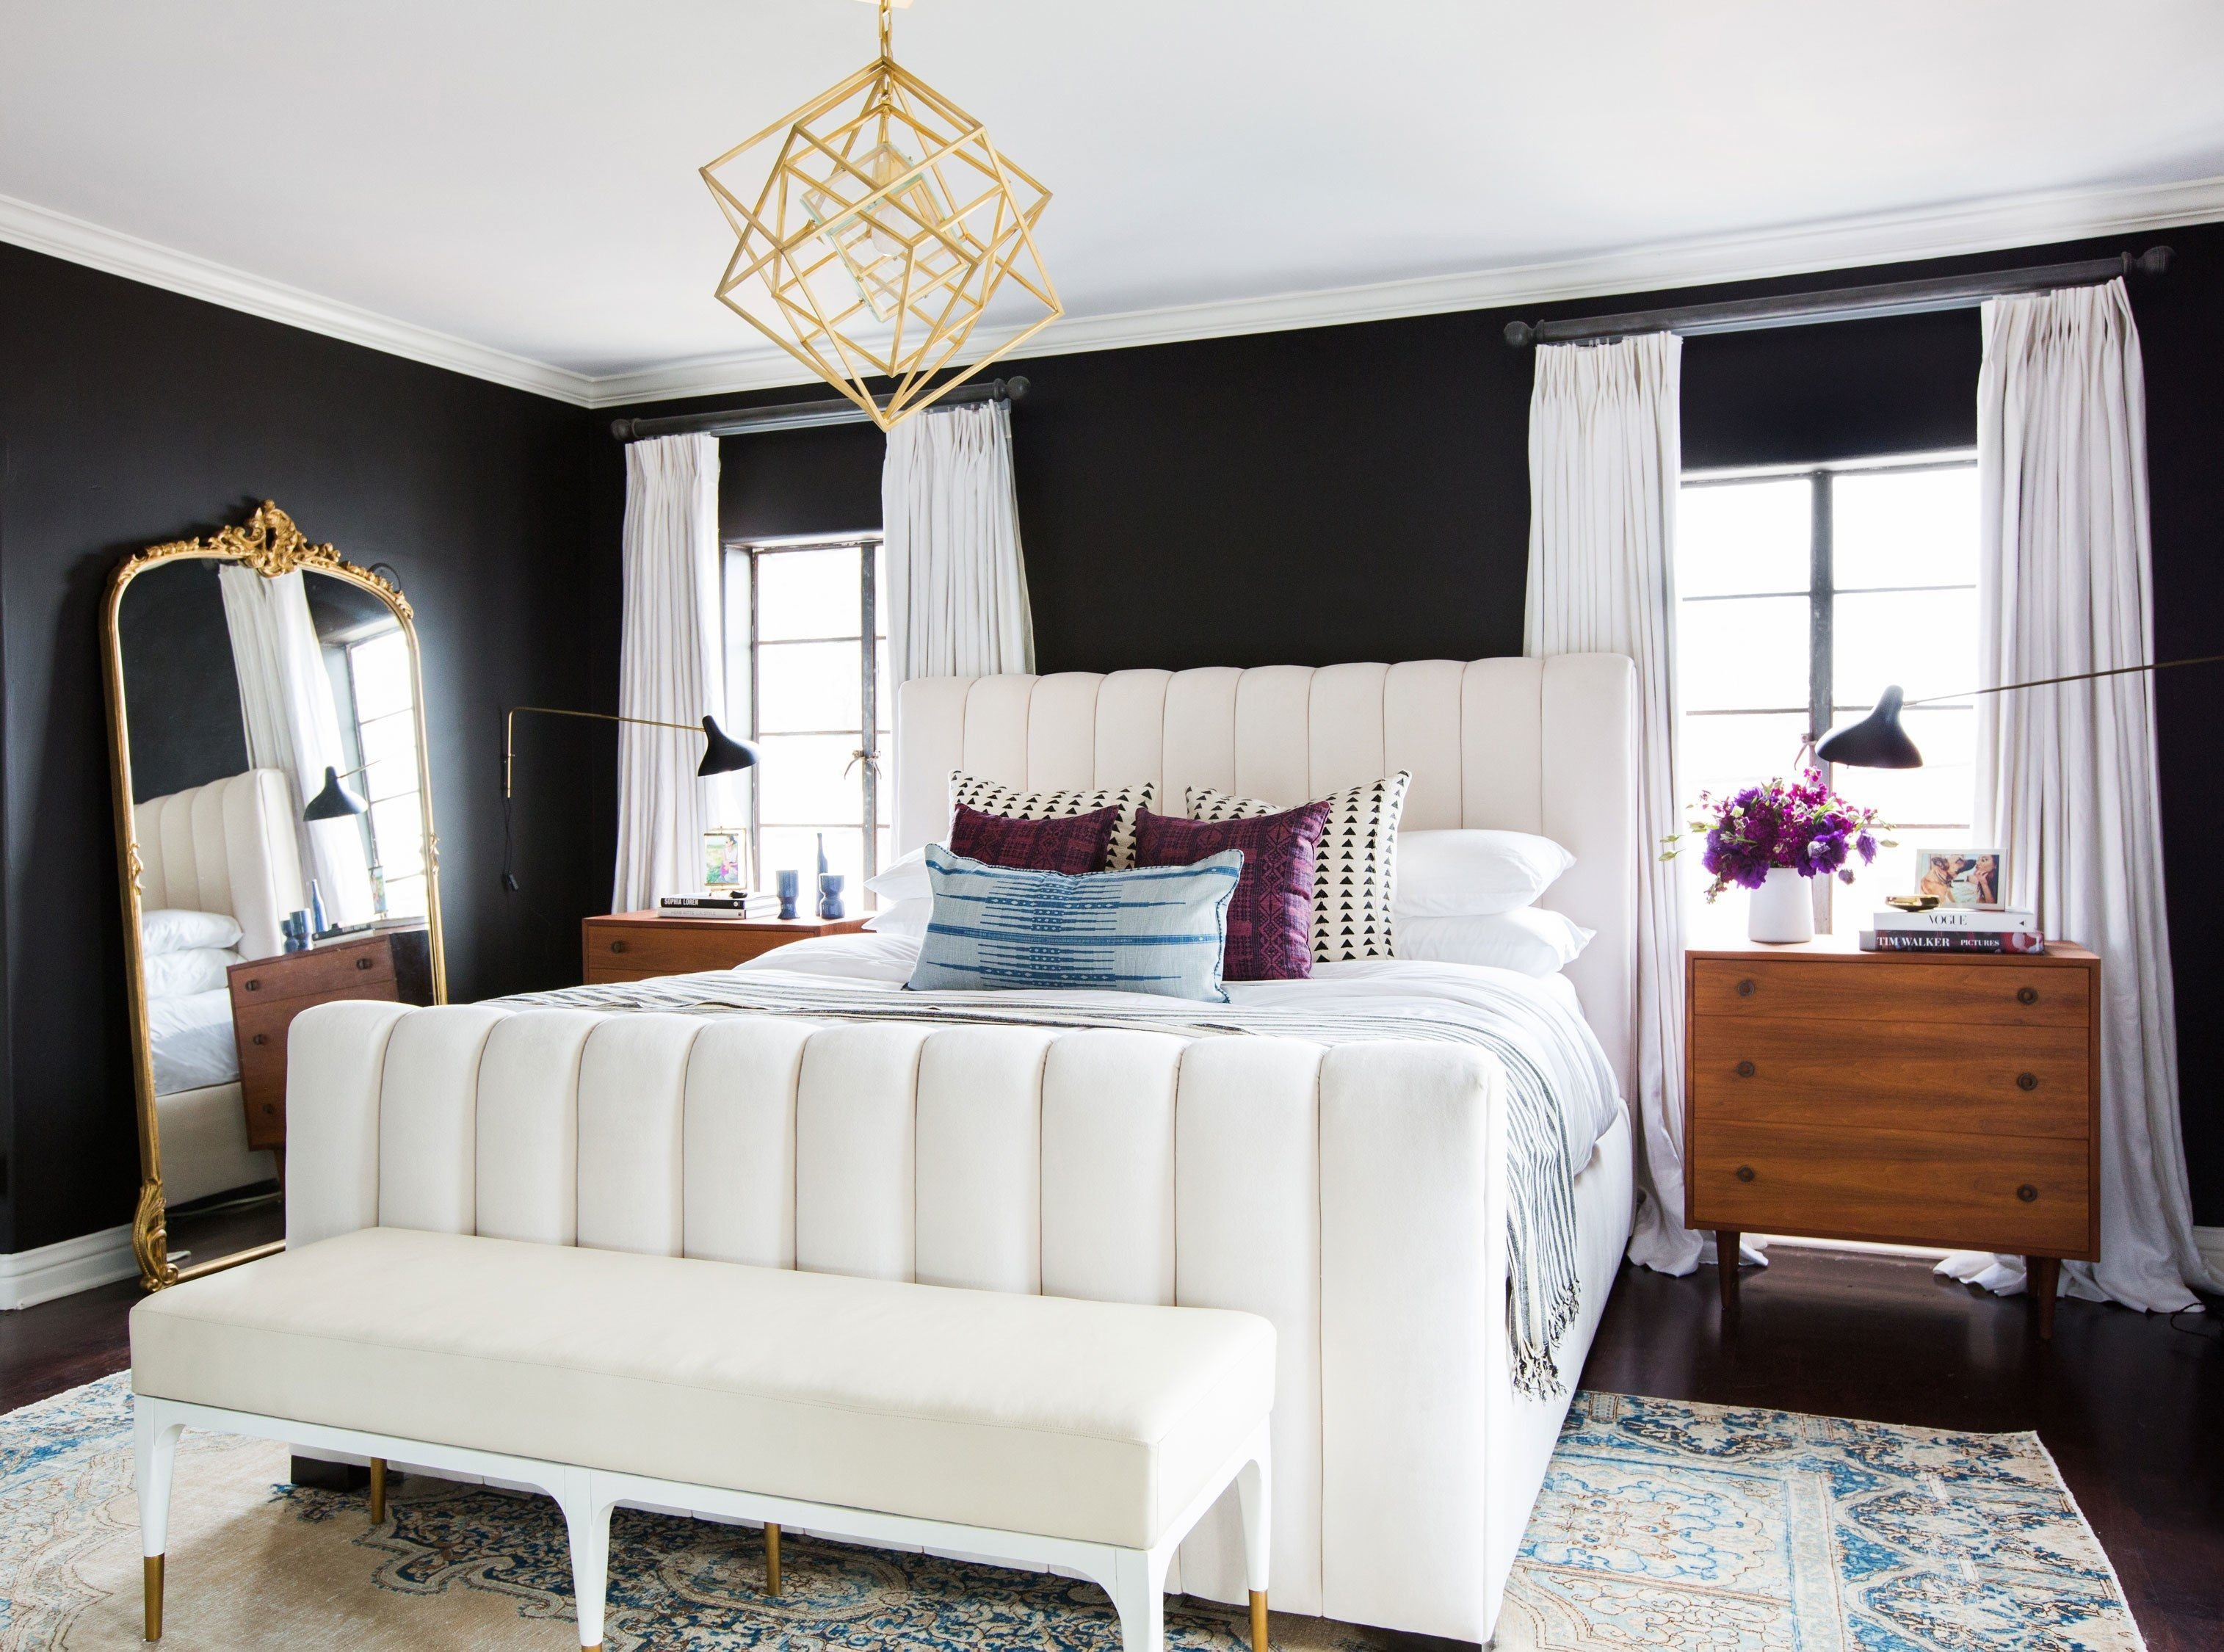 Best Inside Pretty Little Liars Star Shay Mitchell's Spanish Style Los Angeles Home Bedrooms With Pictures